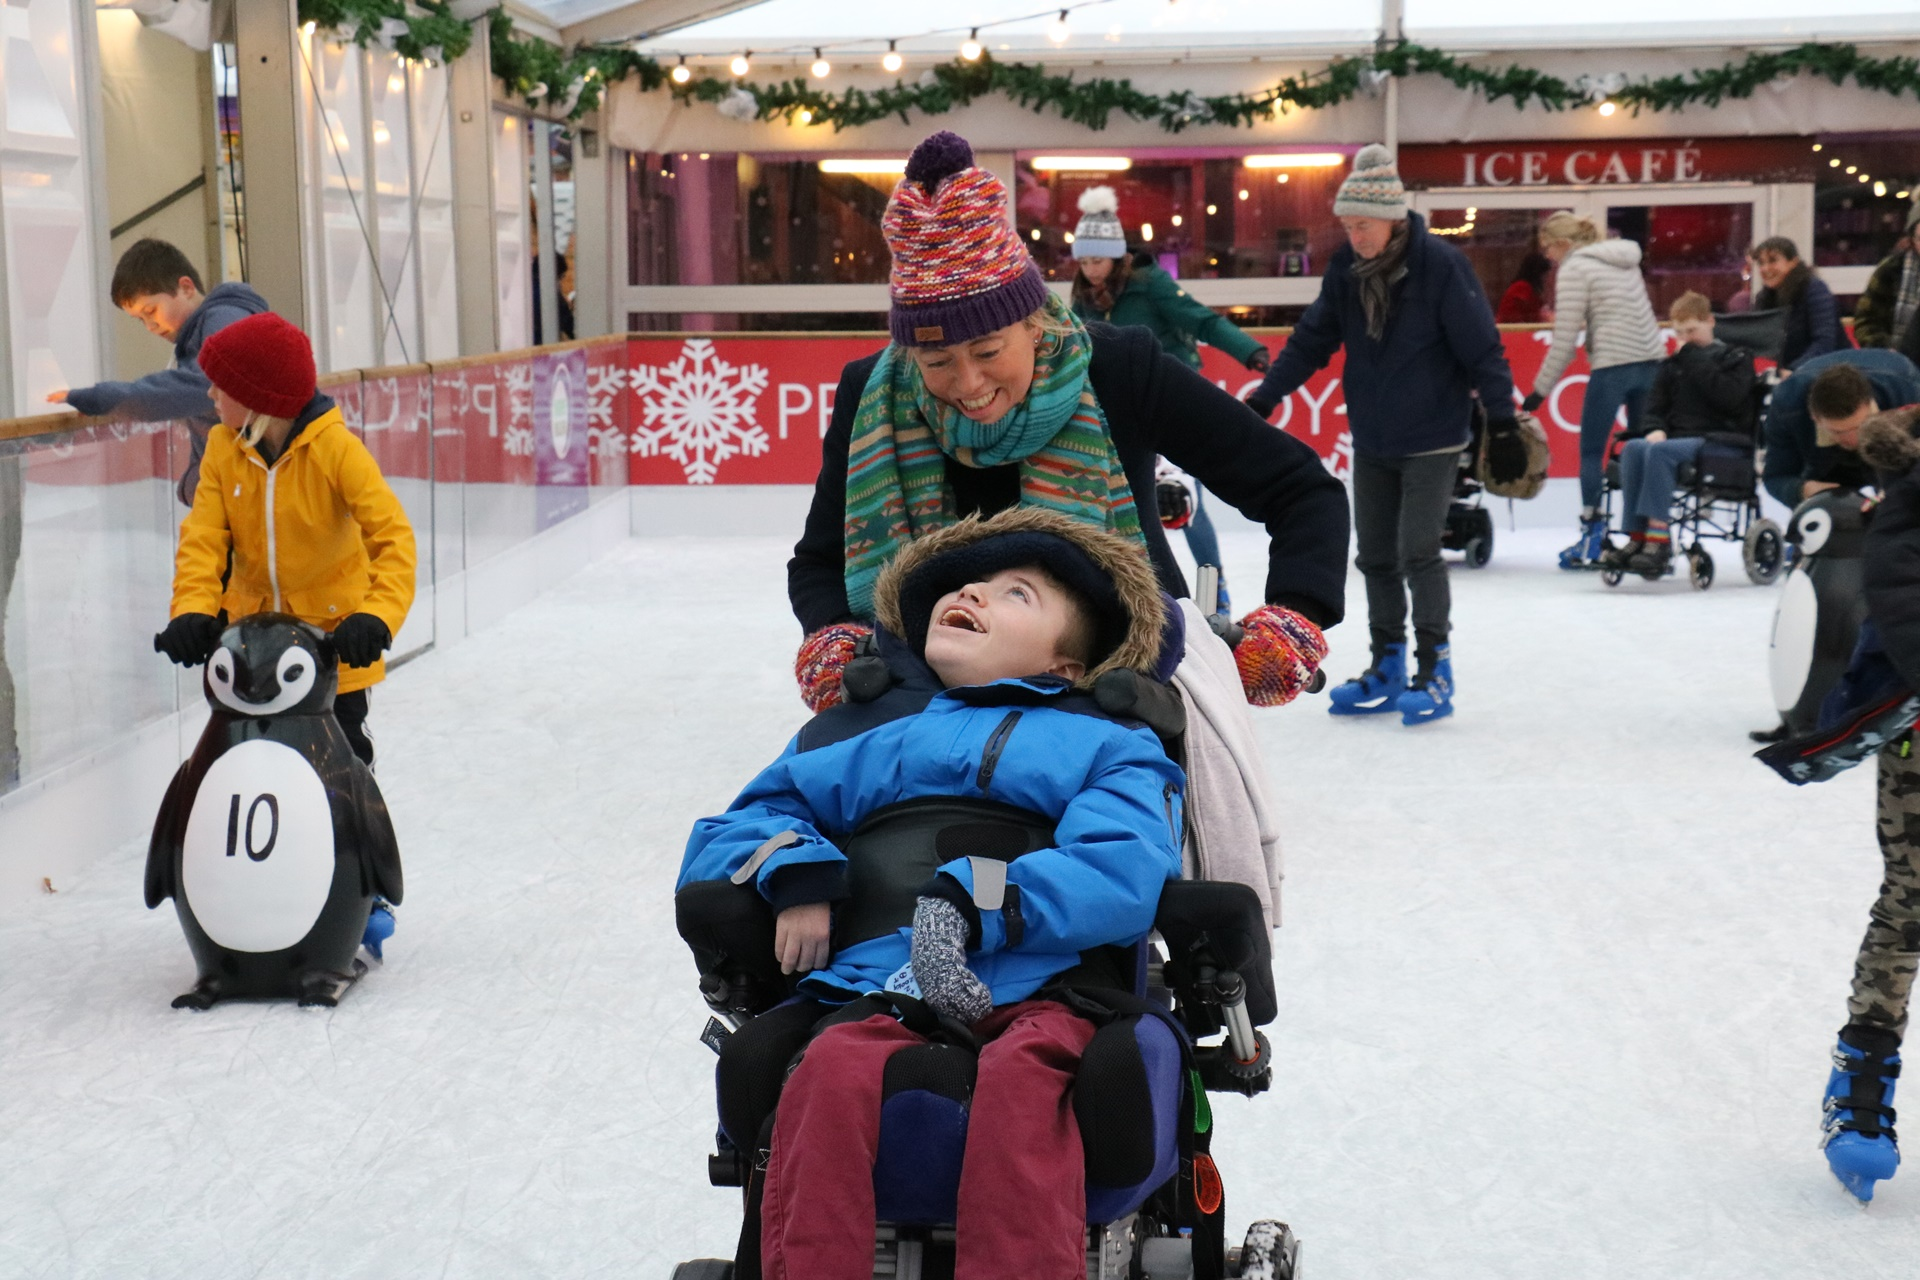 Naomi House & Jacksplace families take over Winchester Cathedral Ice Rink for a festive skate